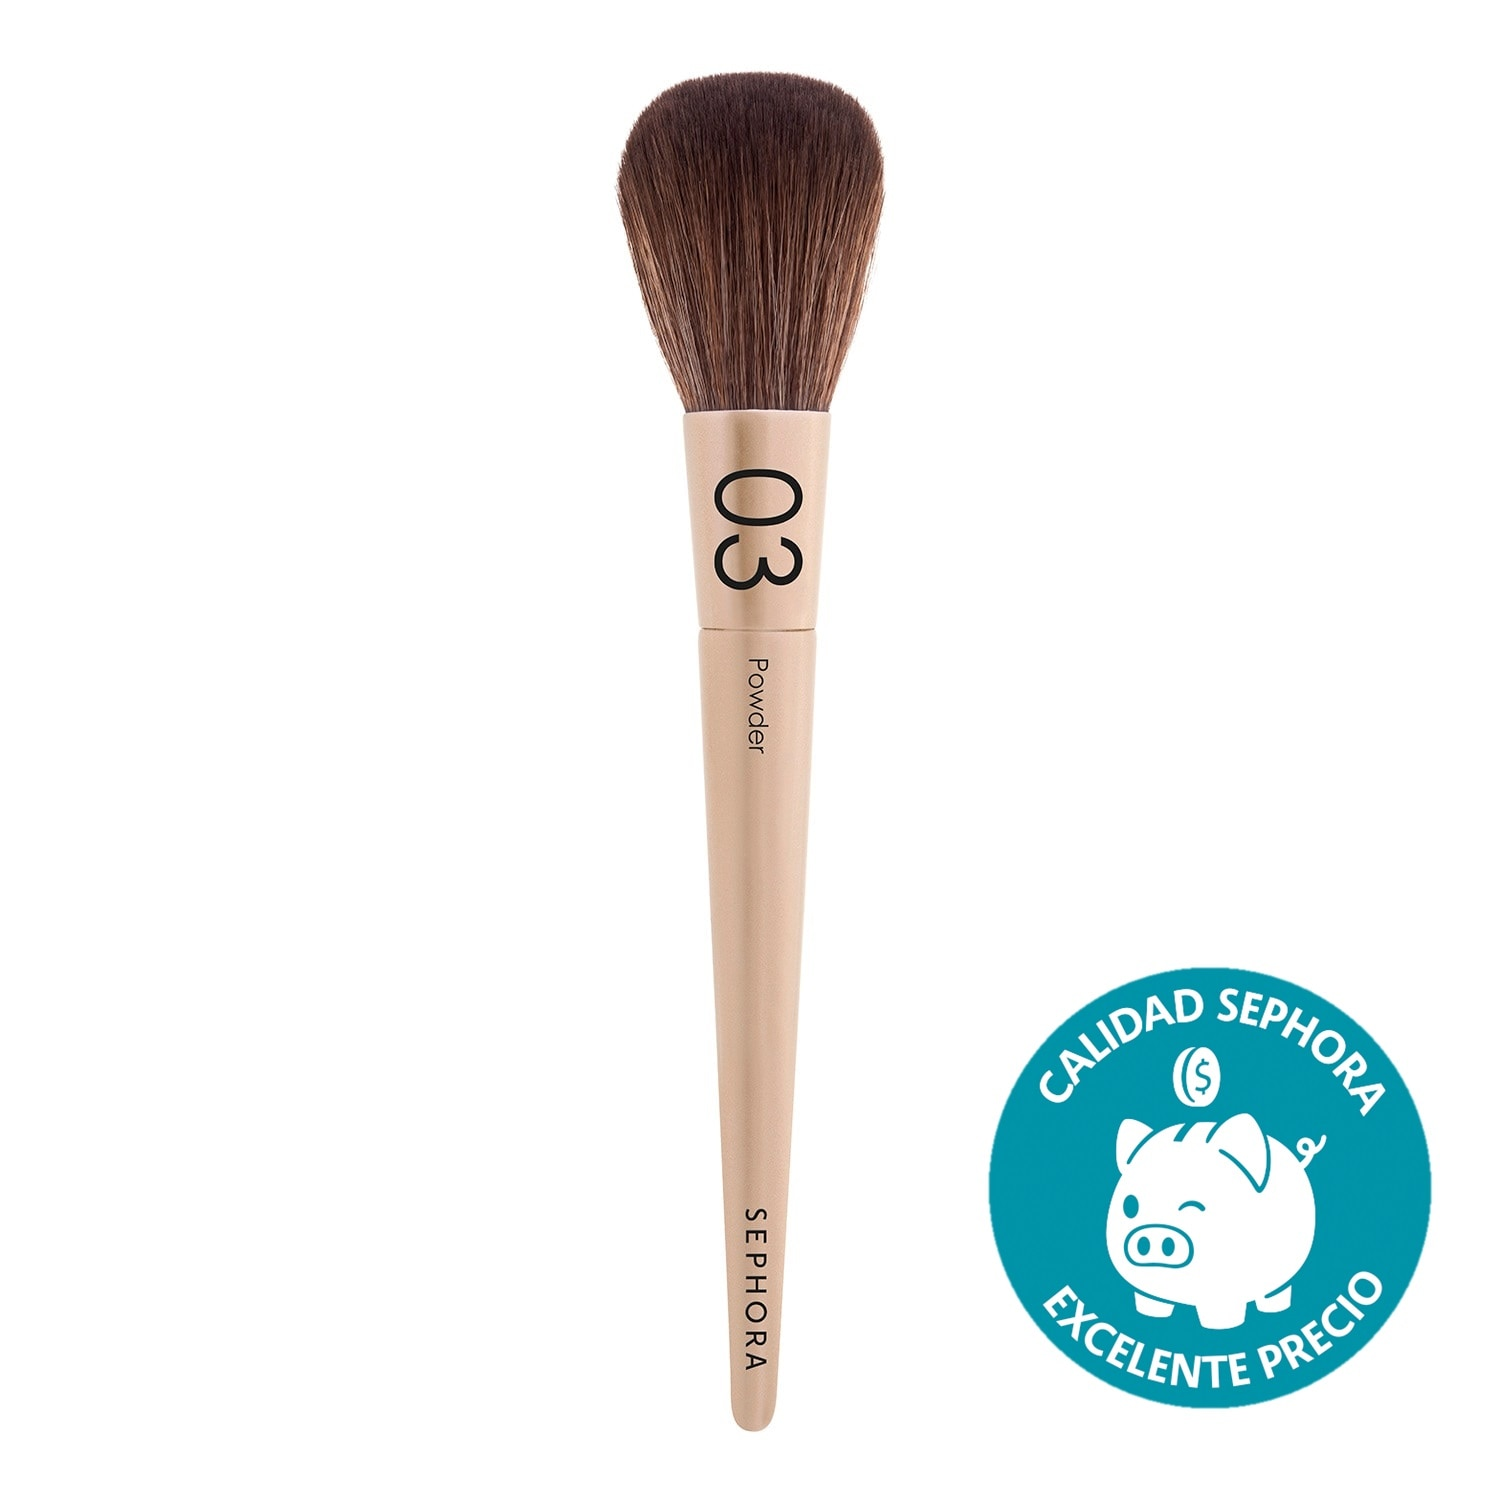 NEW CLASSIC BRUSH POWDER 03